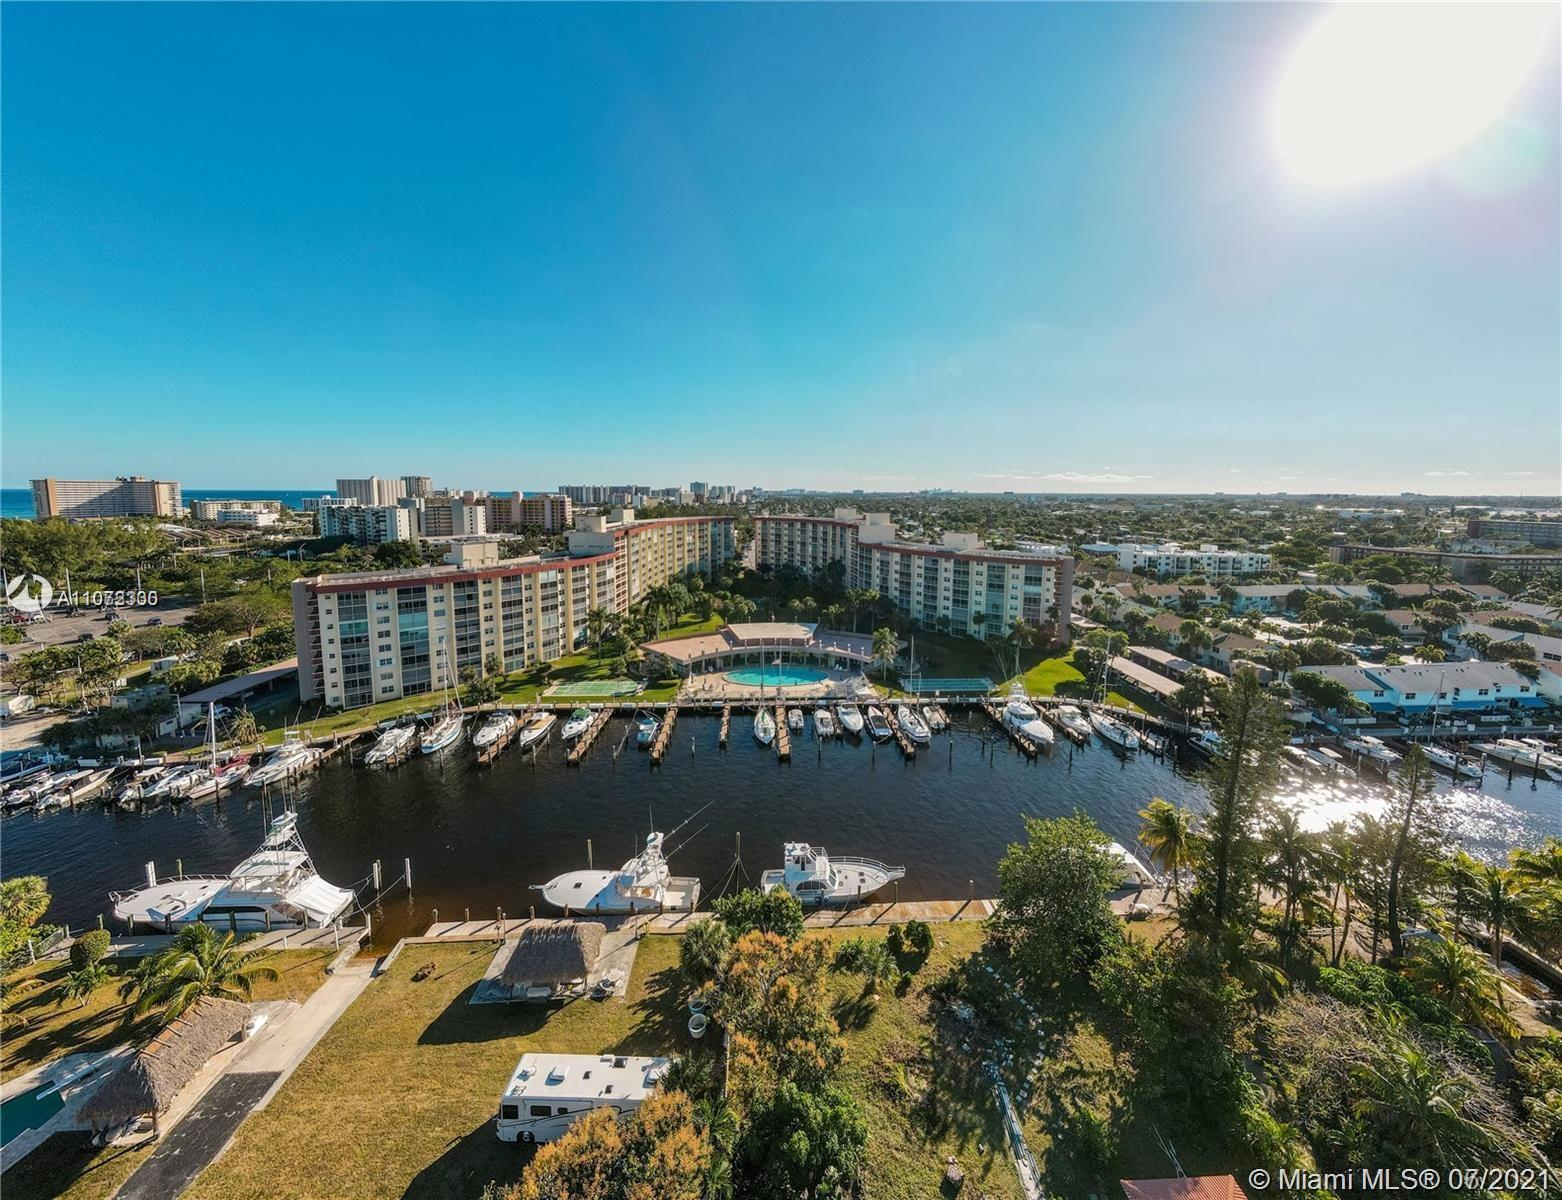 Awesome Location Intercostal, walking distance to the beach, 1 Bedroom 1.5 Bath condo in Garden Aire